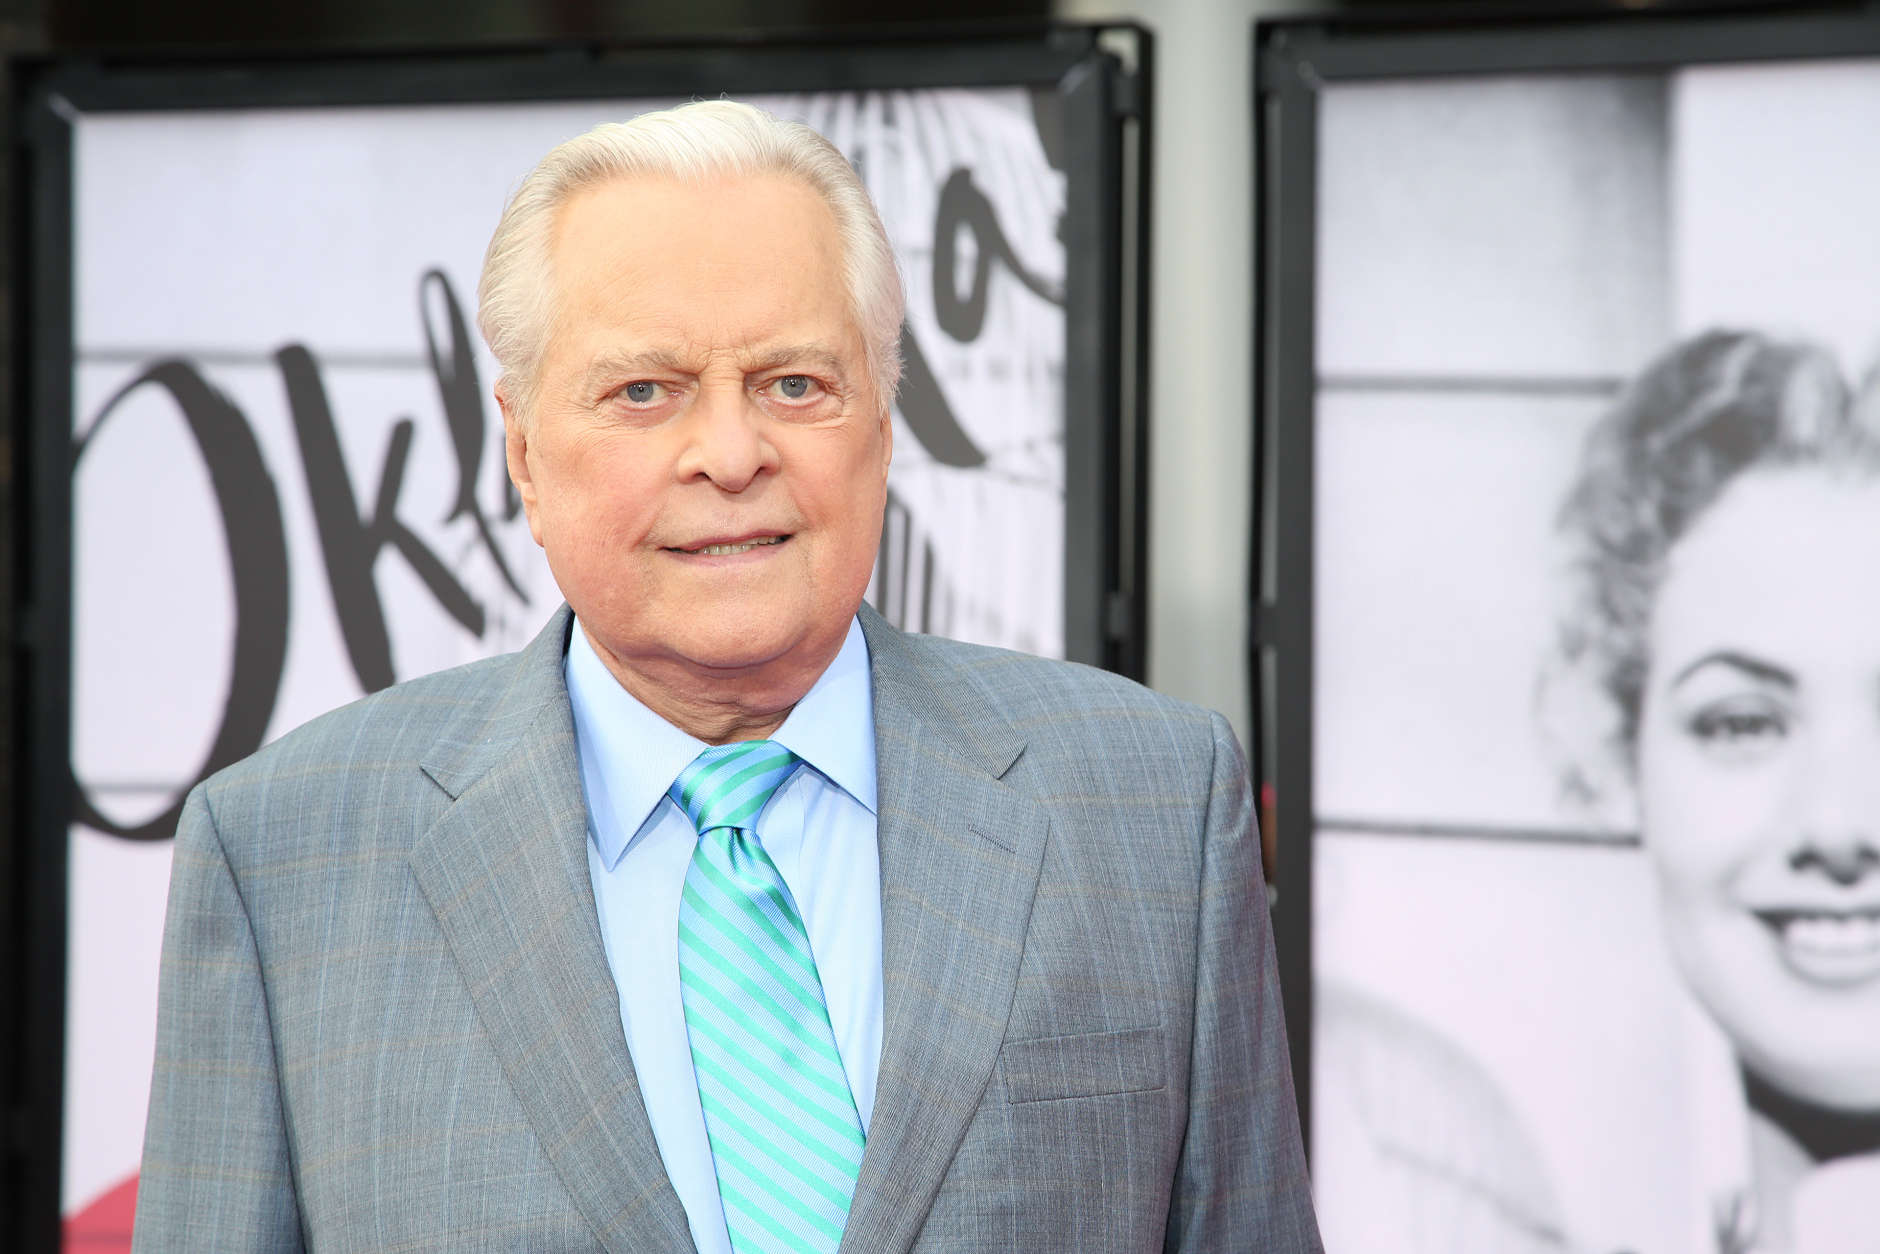 Robert Osborne arrives at 2014 TCM Classic Film Festival's Opening Night Gala at the TCL Chinese Theatre on Thursday, April 10, 2014 in Los Angeles. (Photo by Annie I. Bang /Invision/AP)